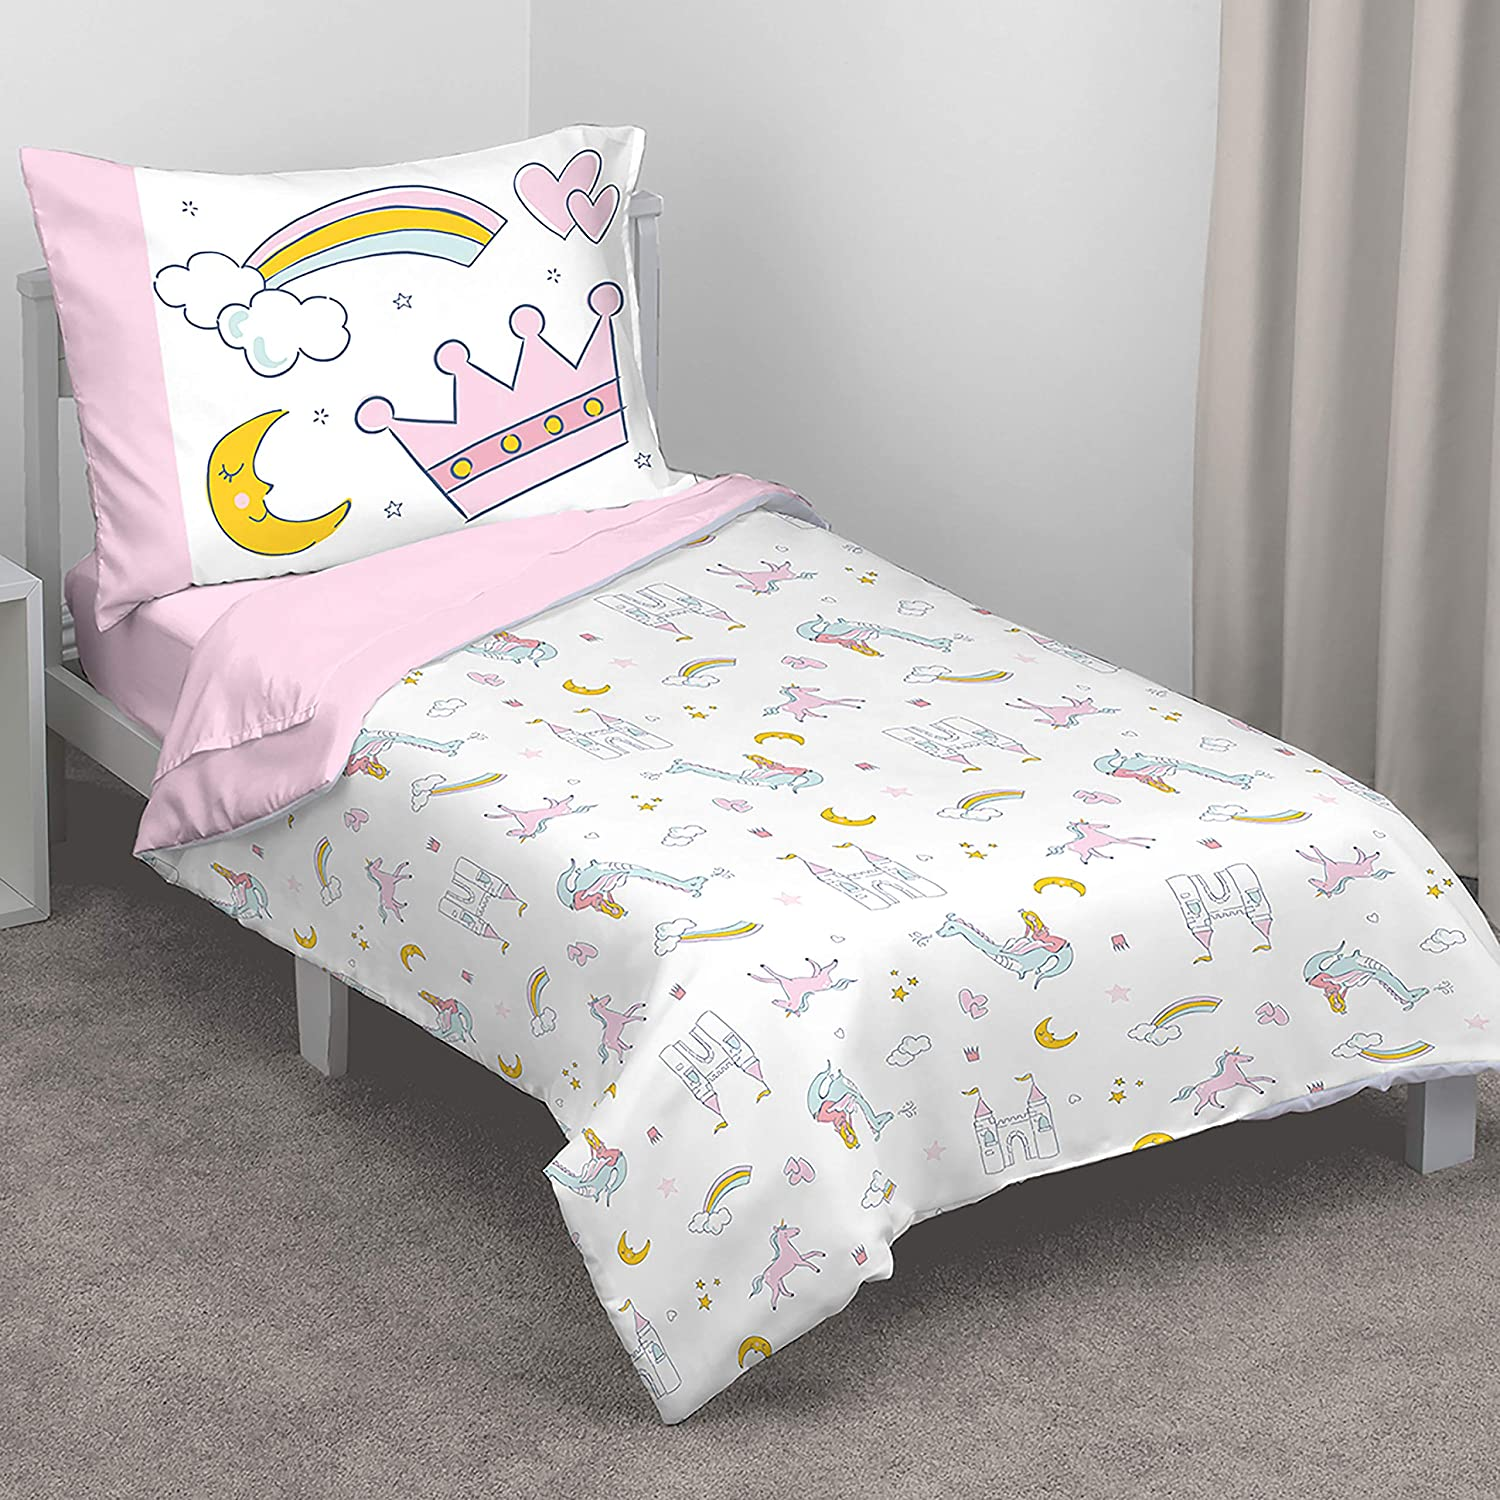 Carter's Whimsical Princess Tales 4 Piece Toddler Bed Set